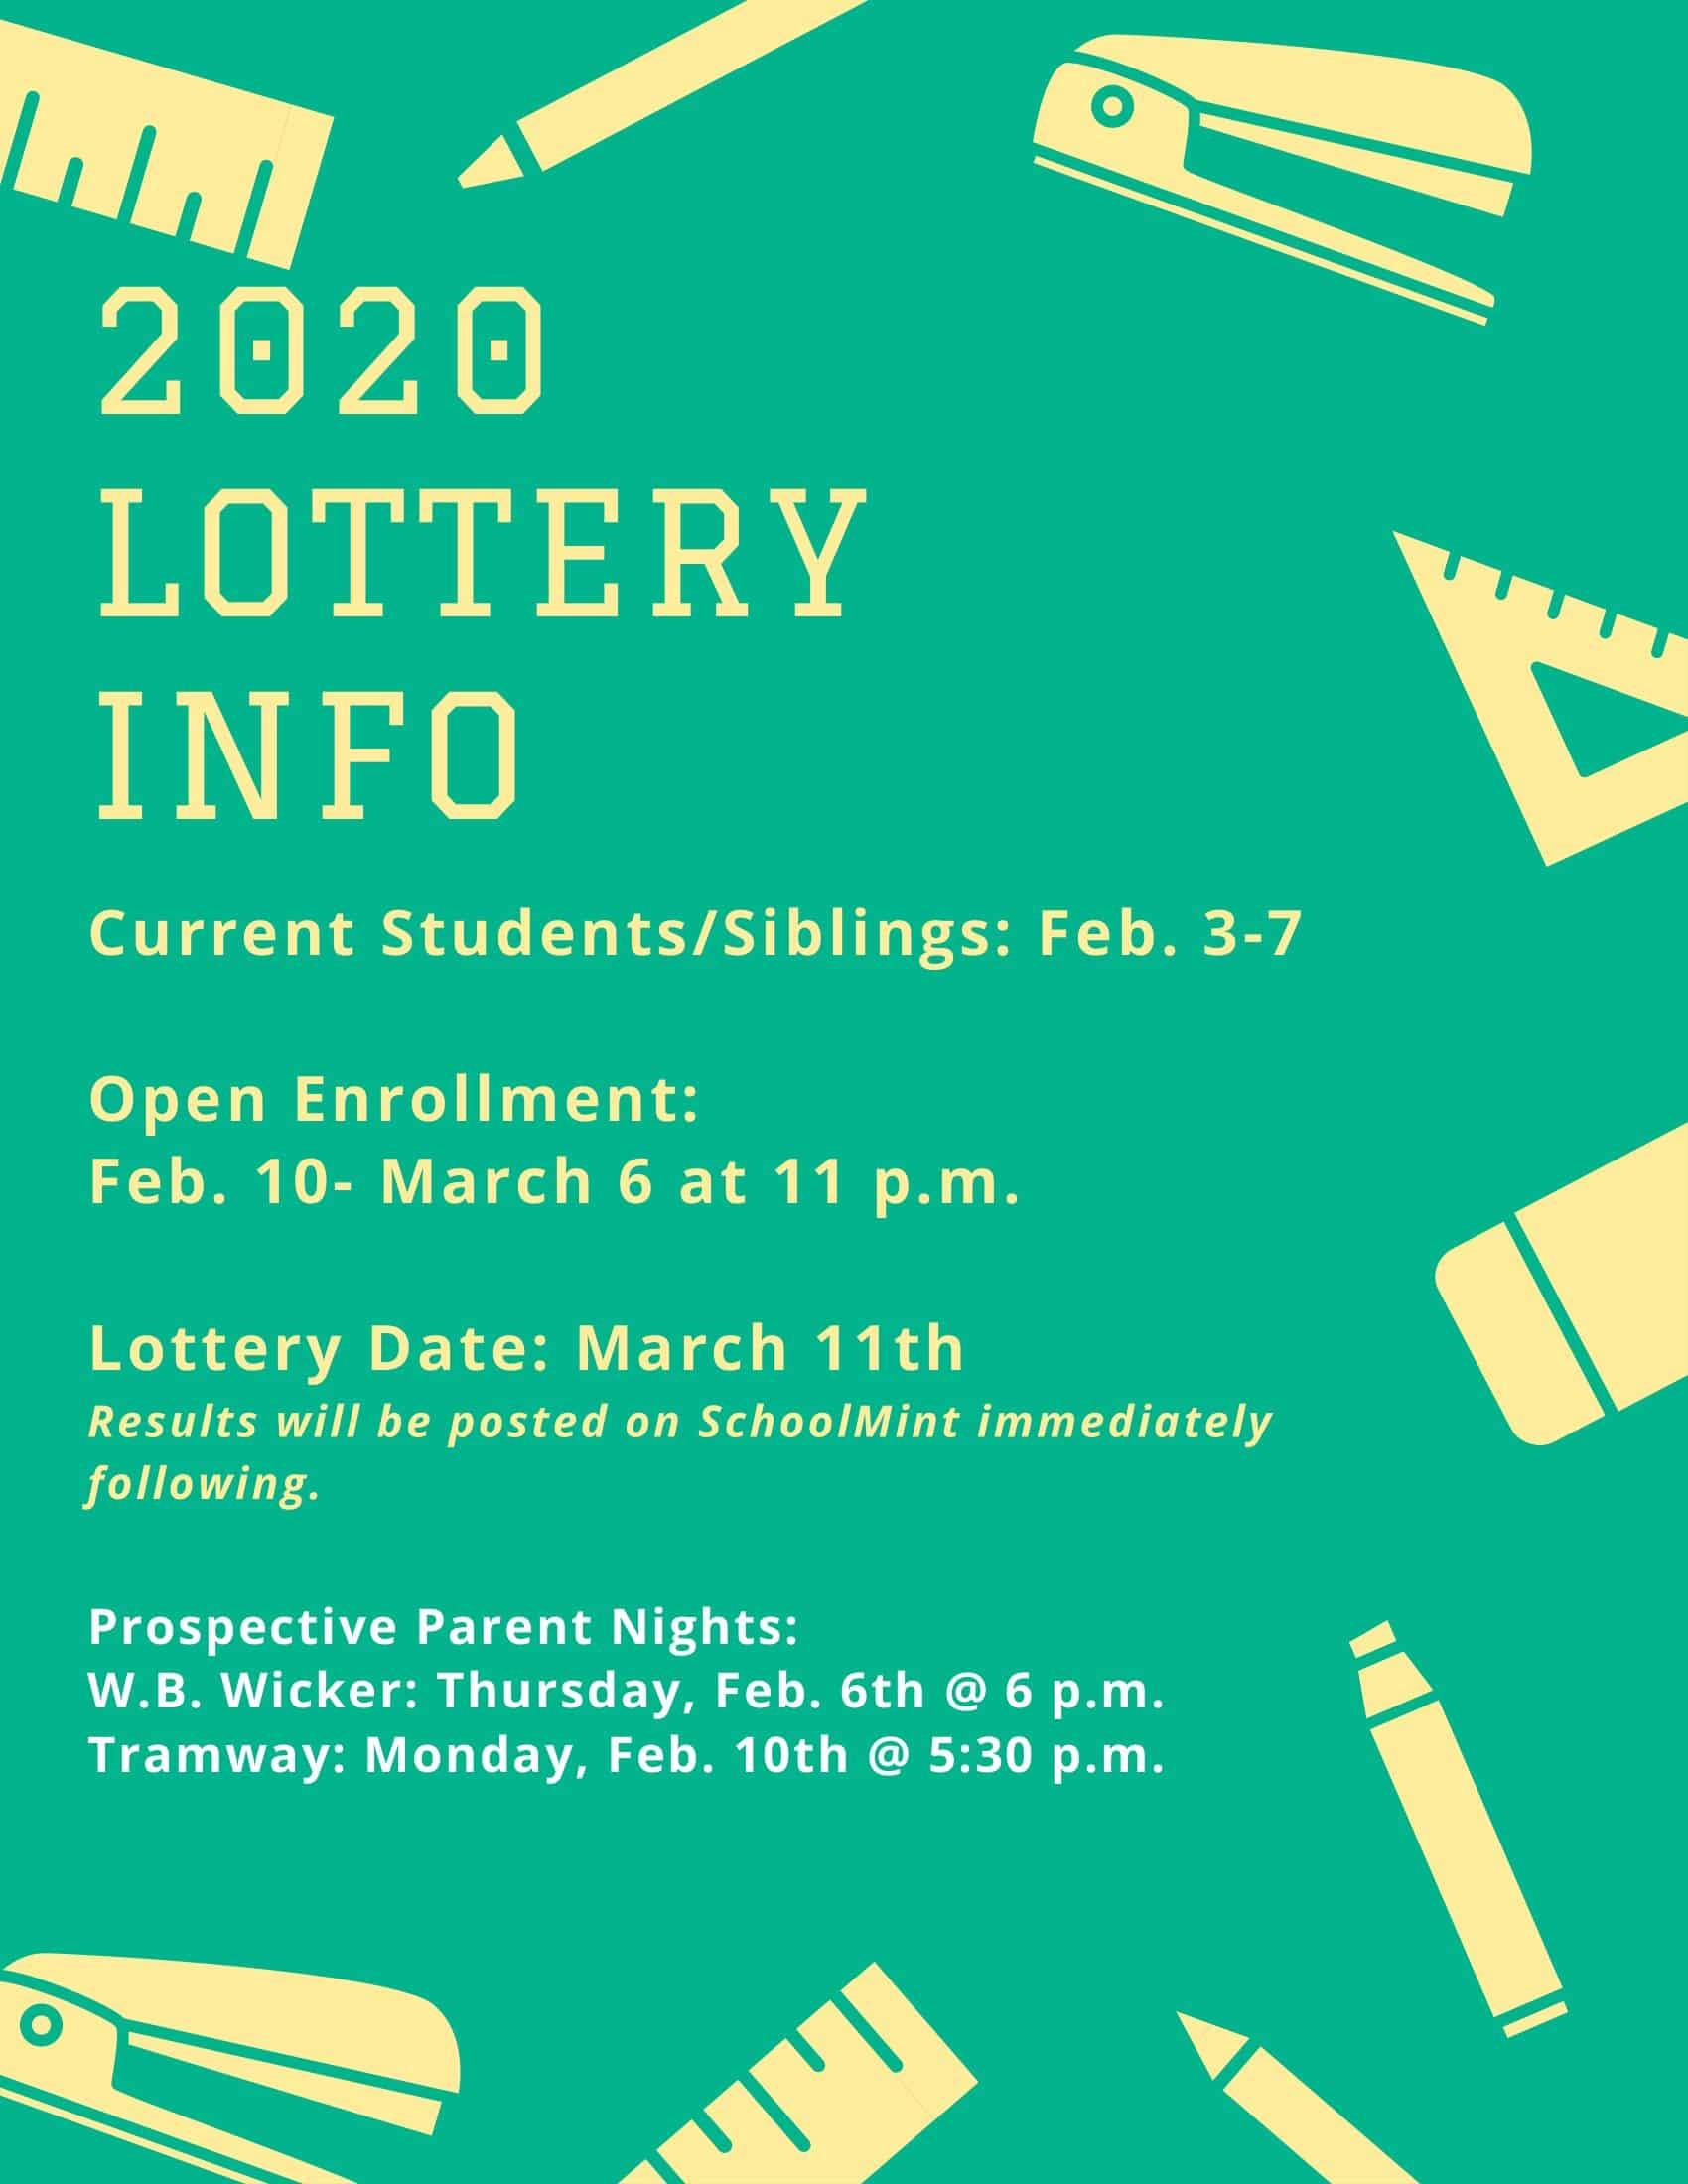 TRAMWAY AND W.B. WICKER LOTTERY INFORMATION